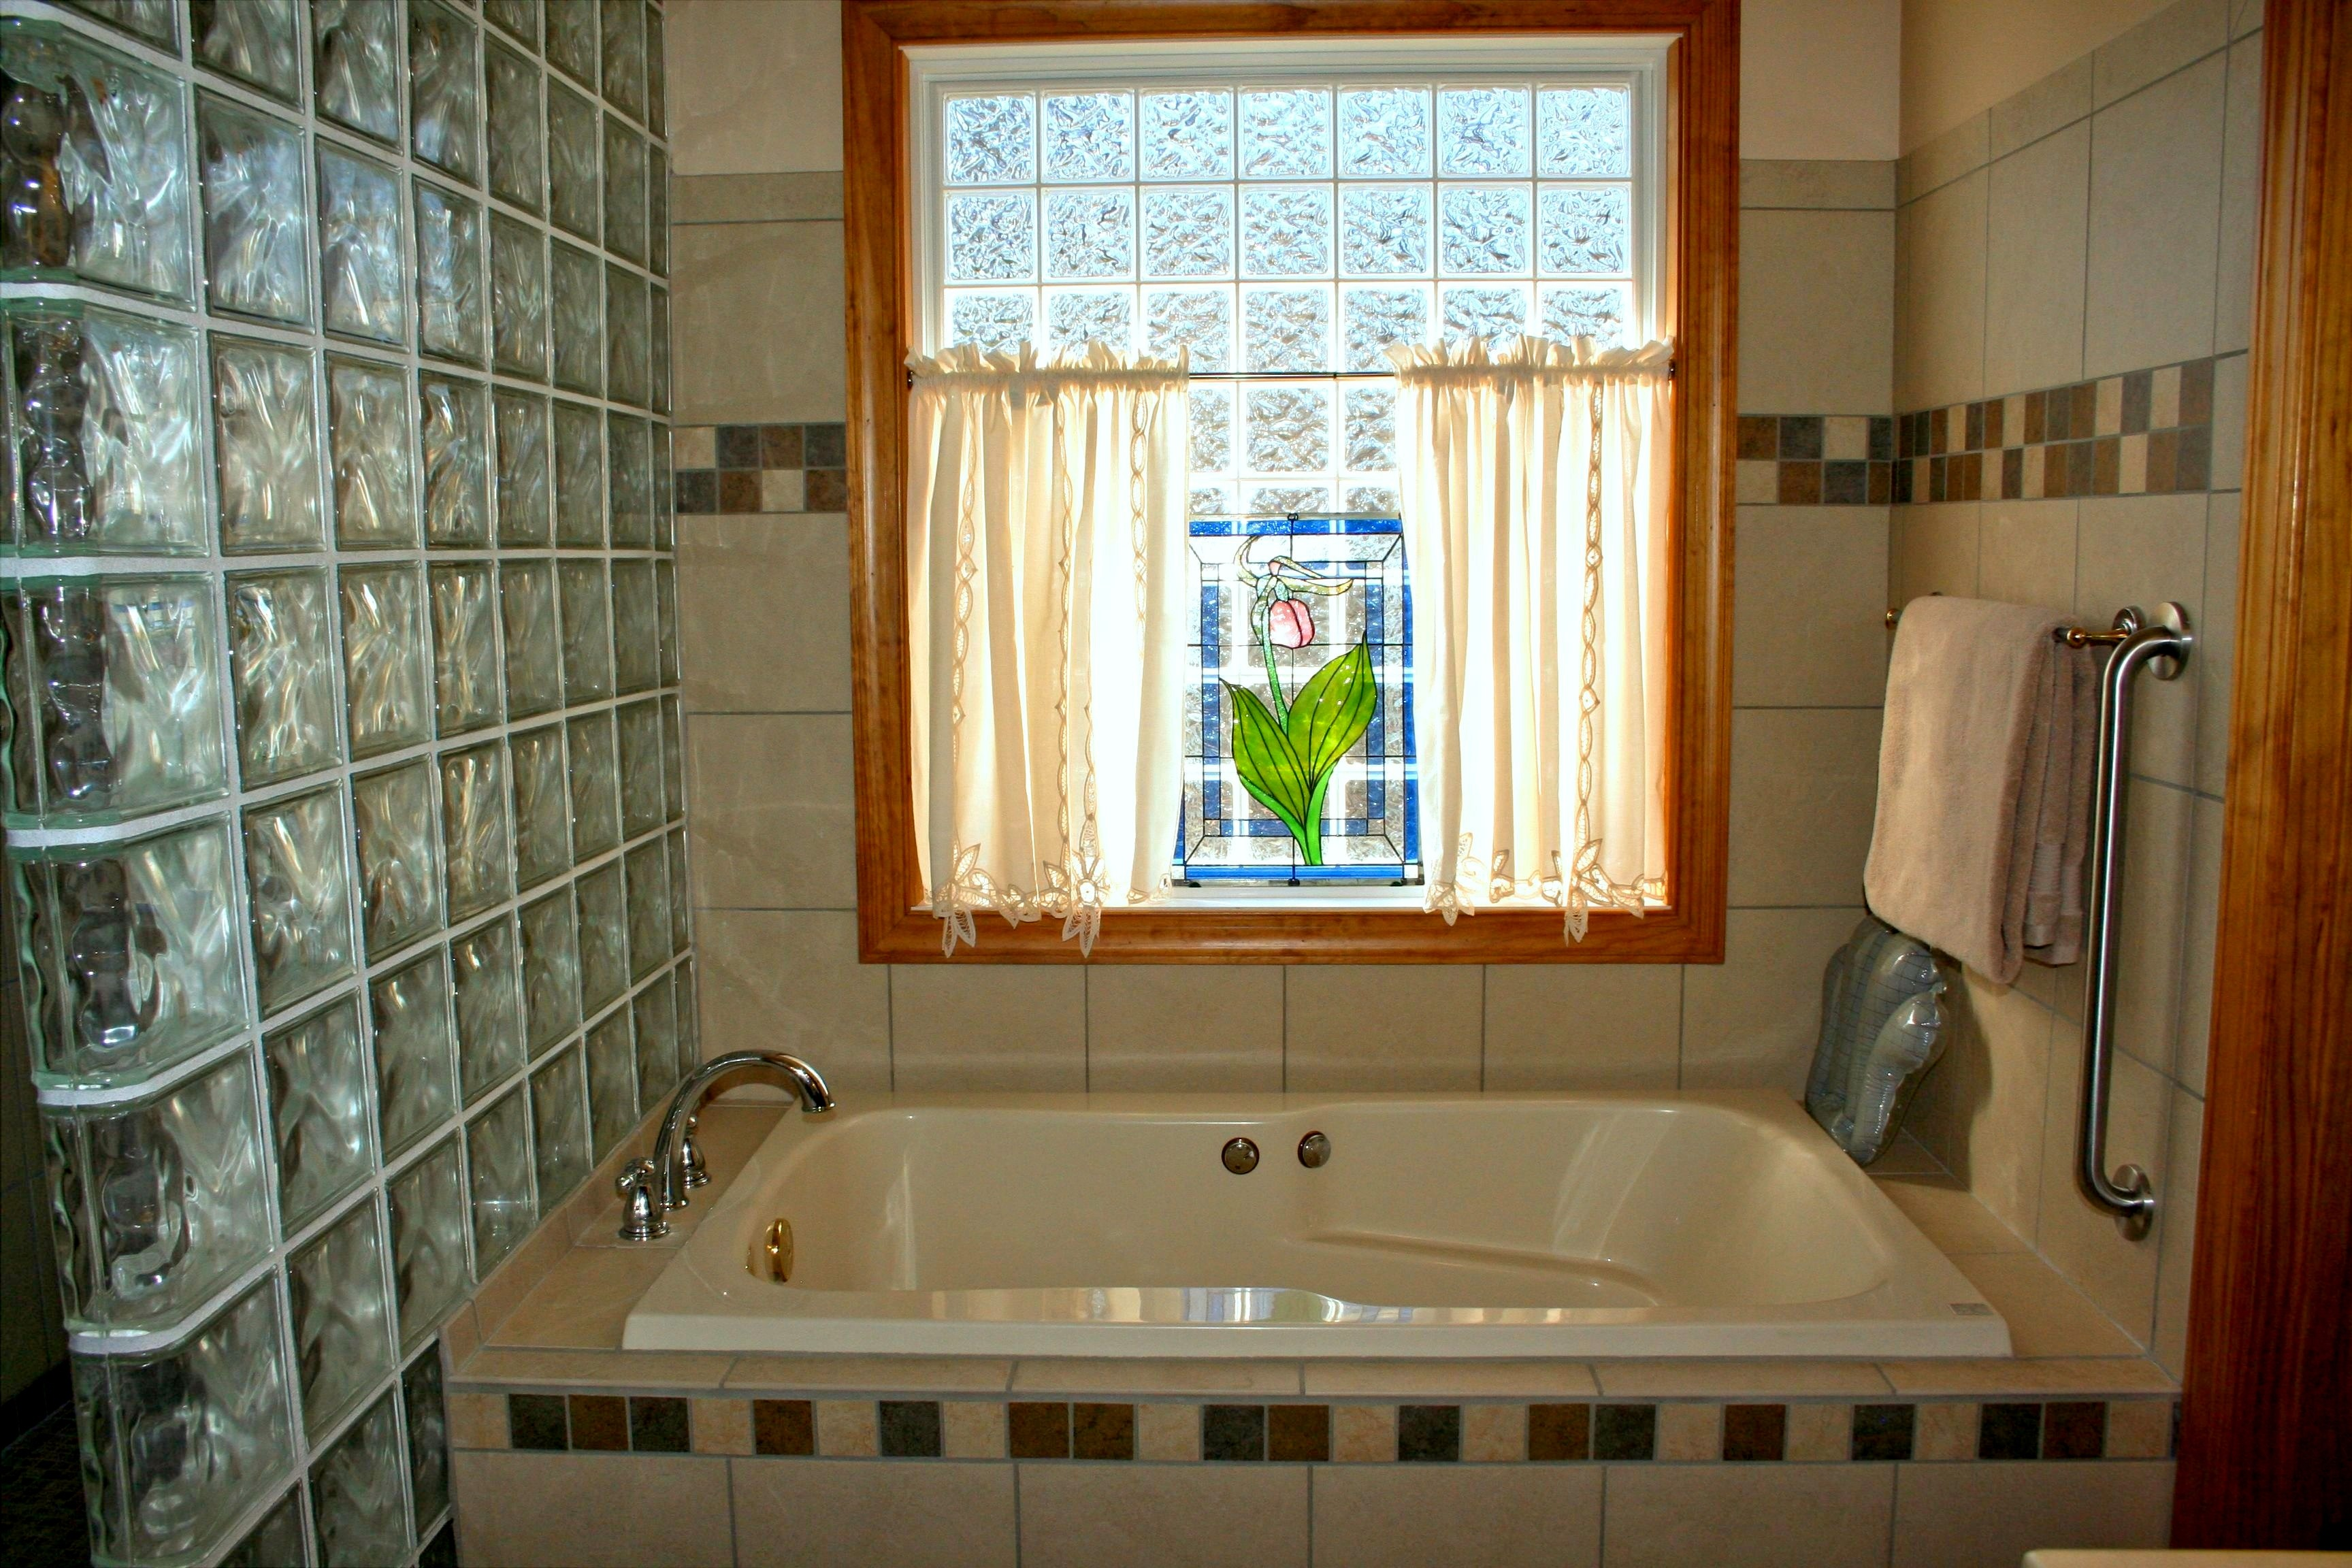 Lessons From an Ugly Bathroom | Pro Remodeler